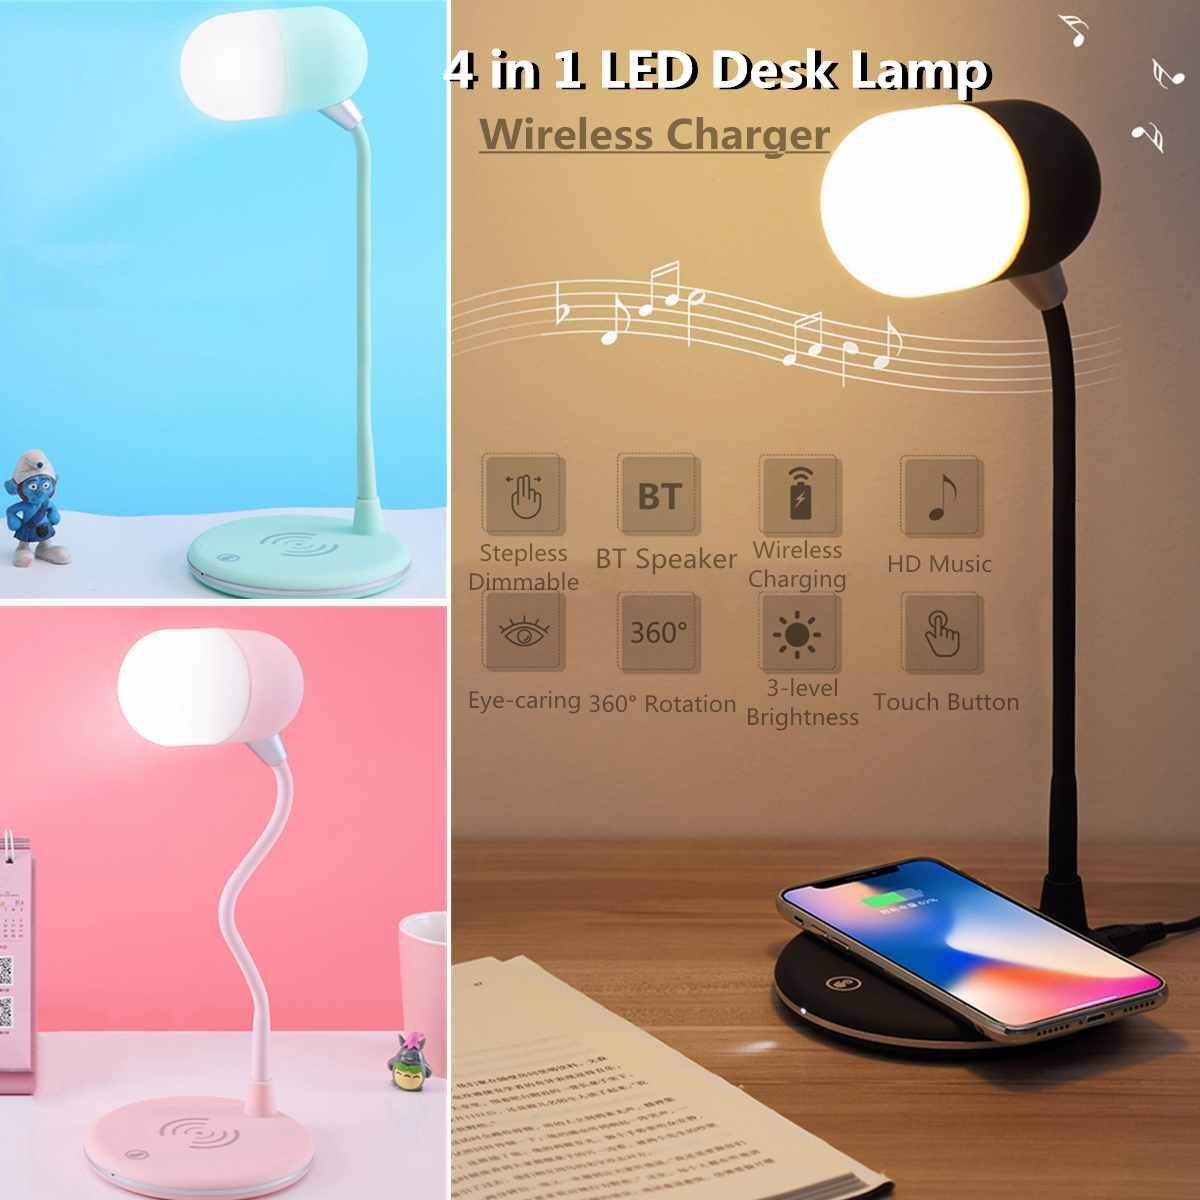 LED Desk Lamp 4 In 1 Wireless Charging LED Music Lamp bluetooth Speaker Table Light Touches Reading Lamp Indoor LightingLED Desk Lamp 4 In 1 Wireless Charging LED Music Lamp bluetooth Speaker Table Light Touches Reading Lamp Indoor Lighting